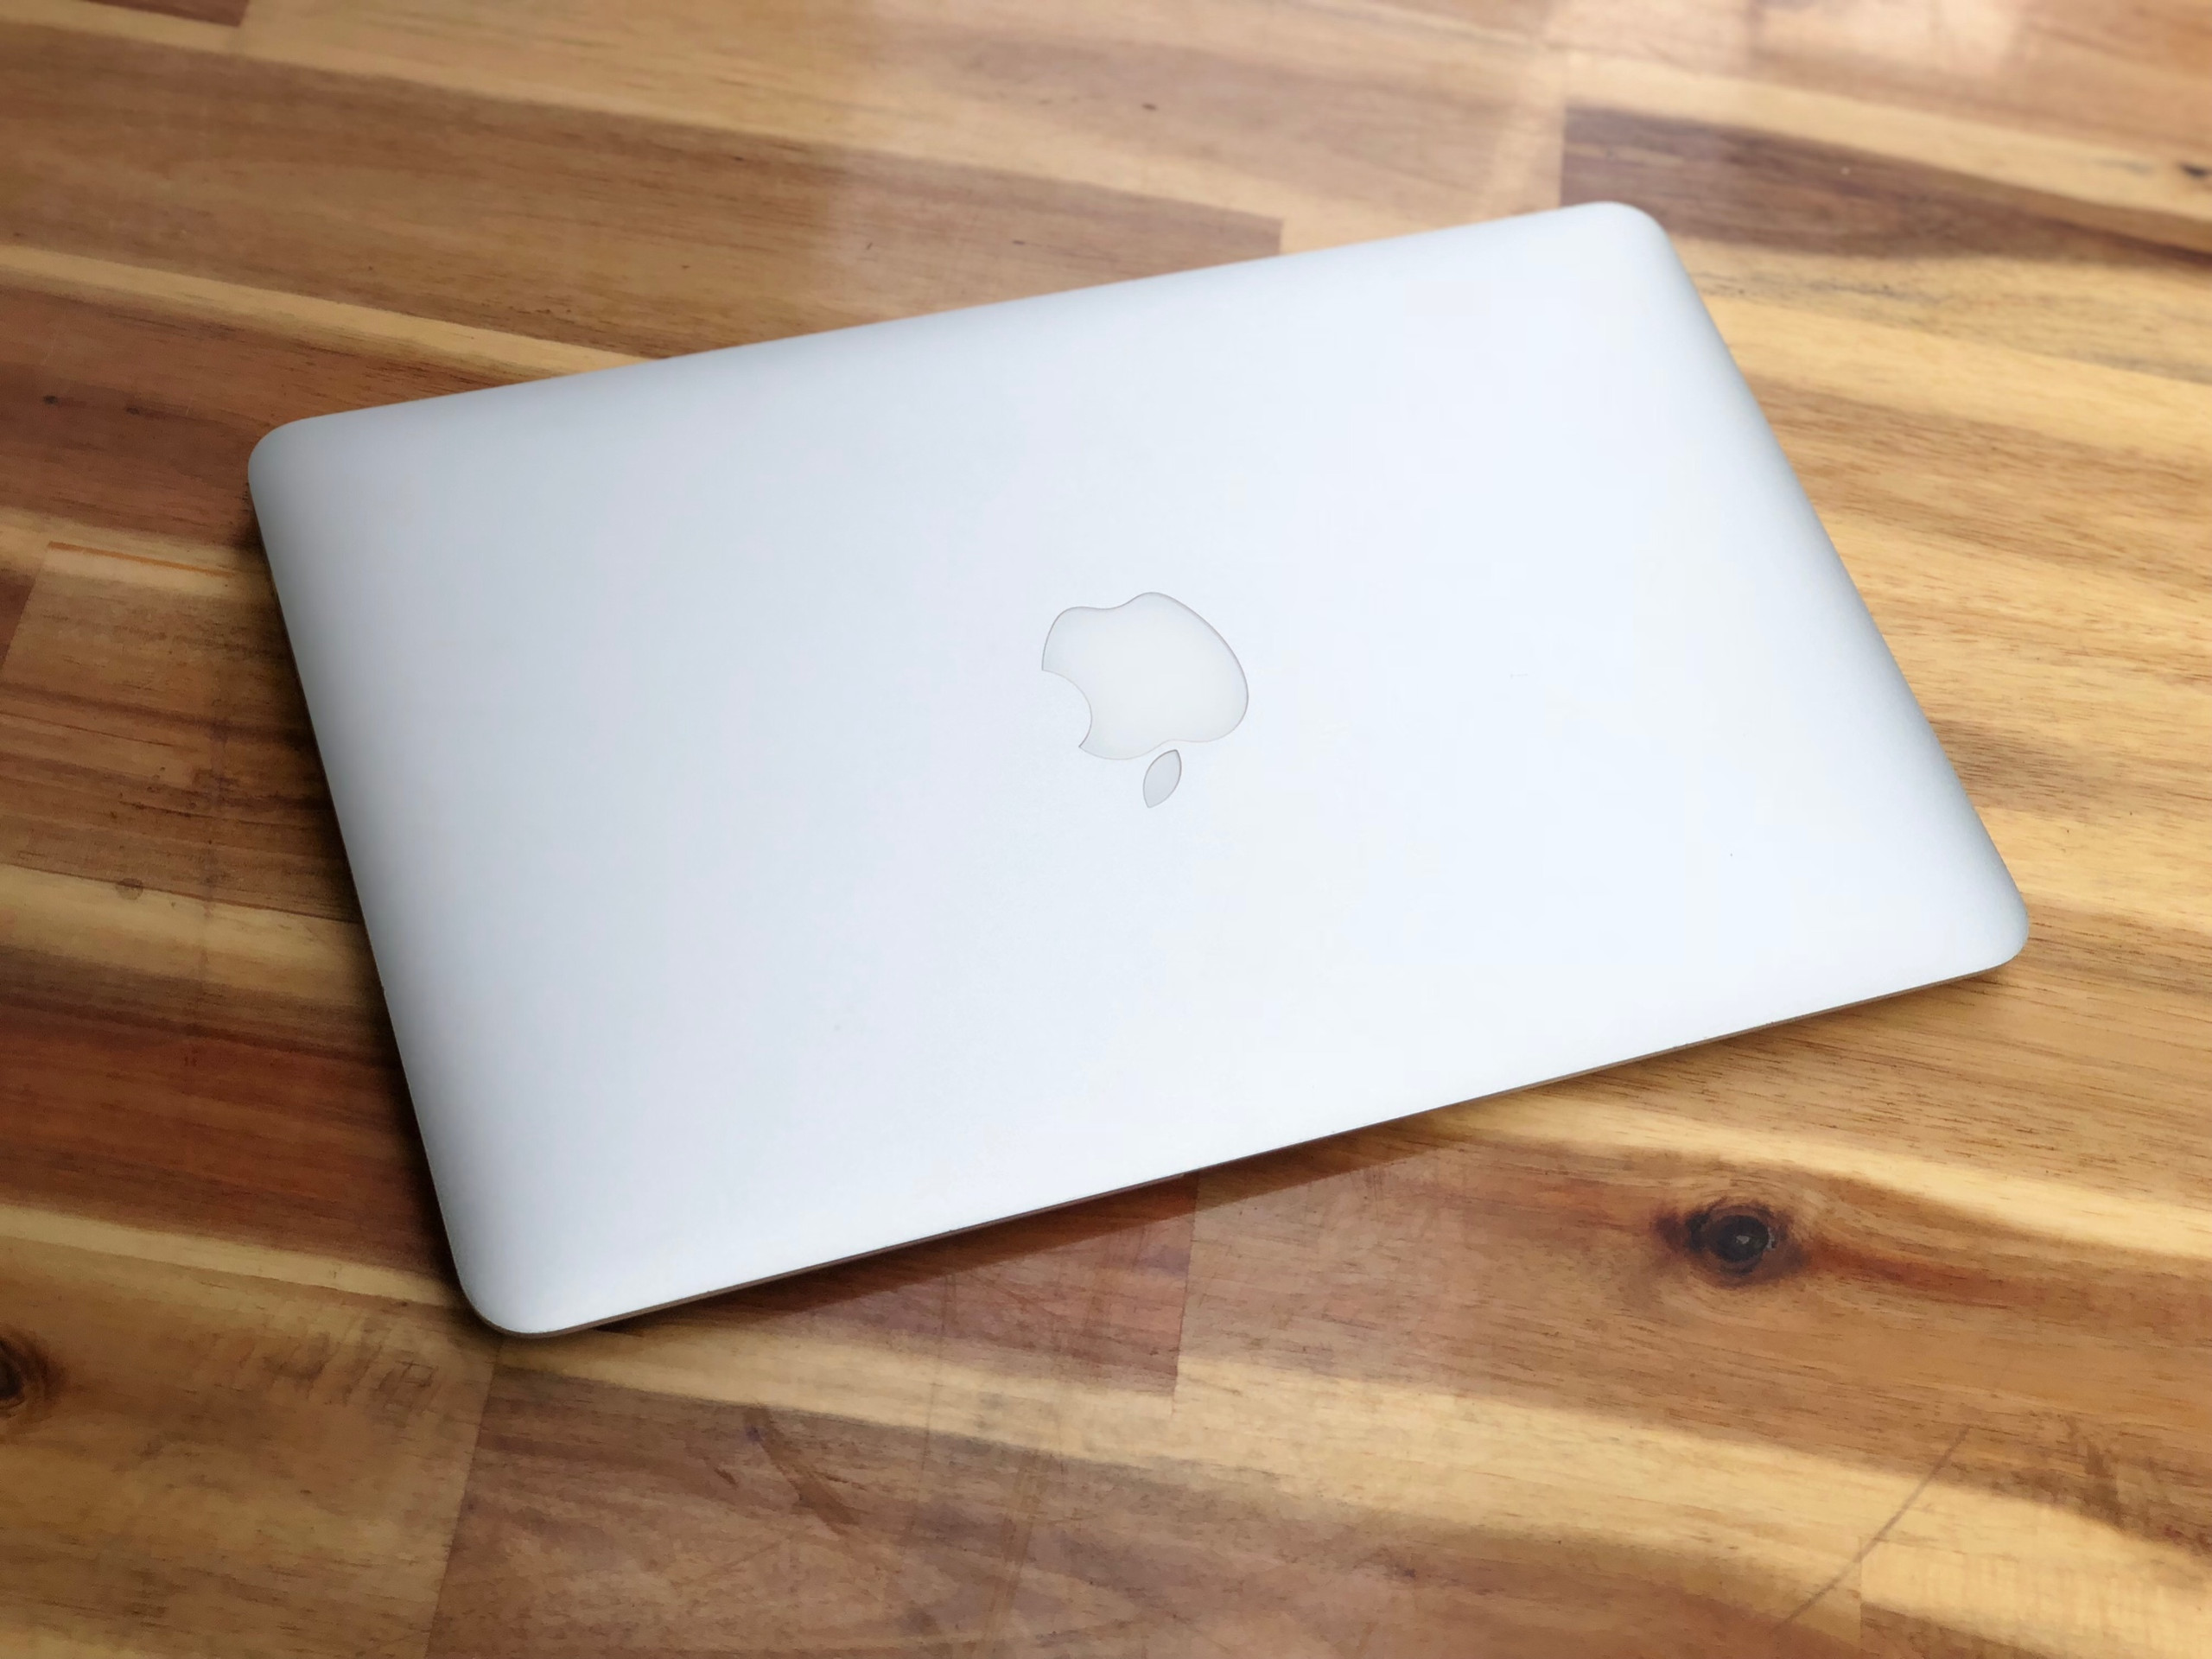 Macbook Air 2015 11in, i5 4G SSD128 Pin Khủng 5-10h Đẹp zin 100%4